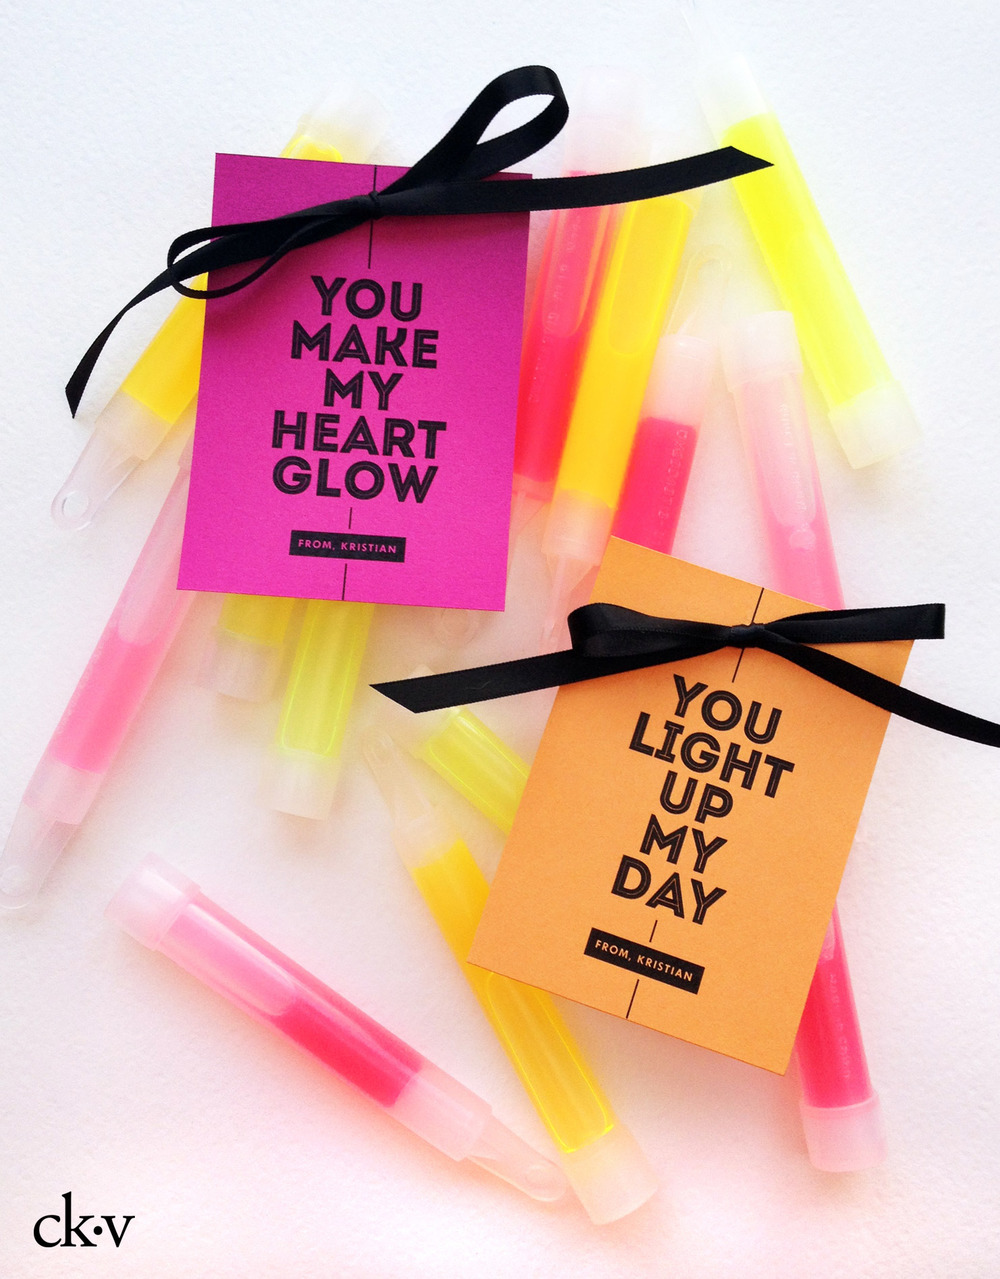 The cutest glow in the dark valentine's for school, non food and you won't have to worry about allergies!